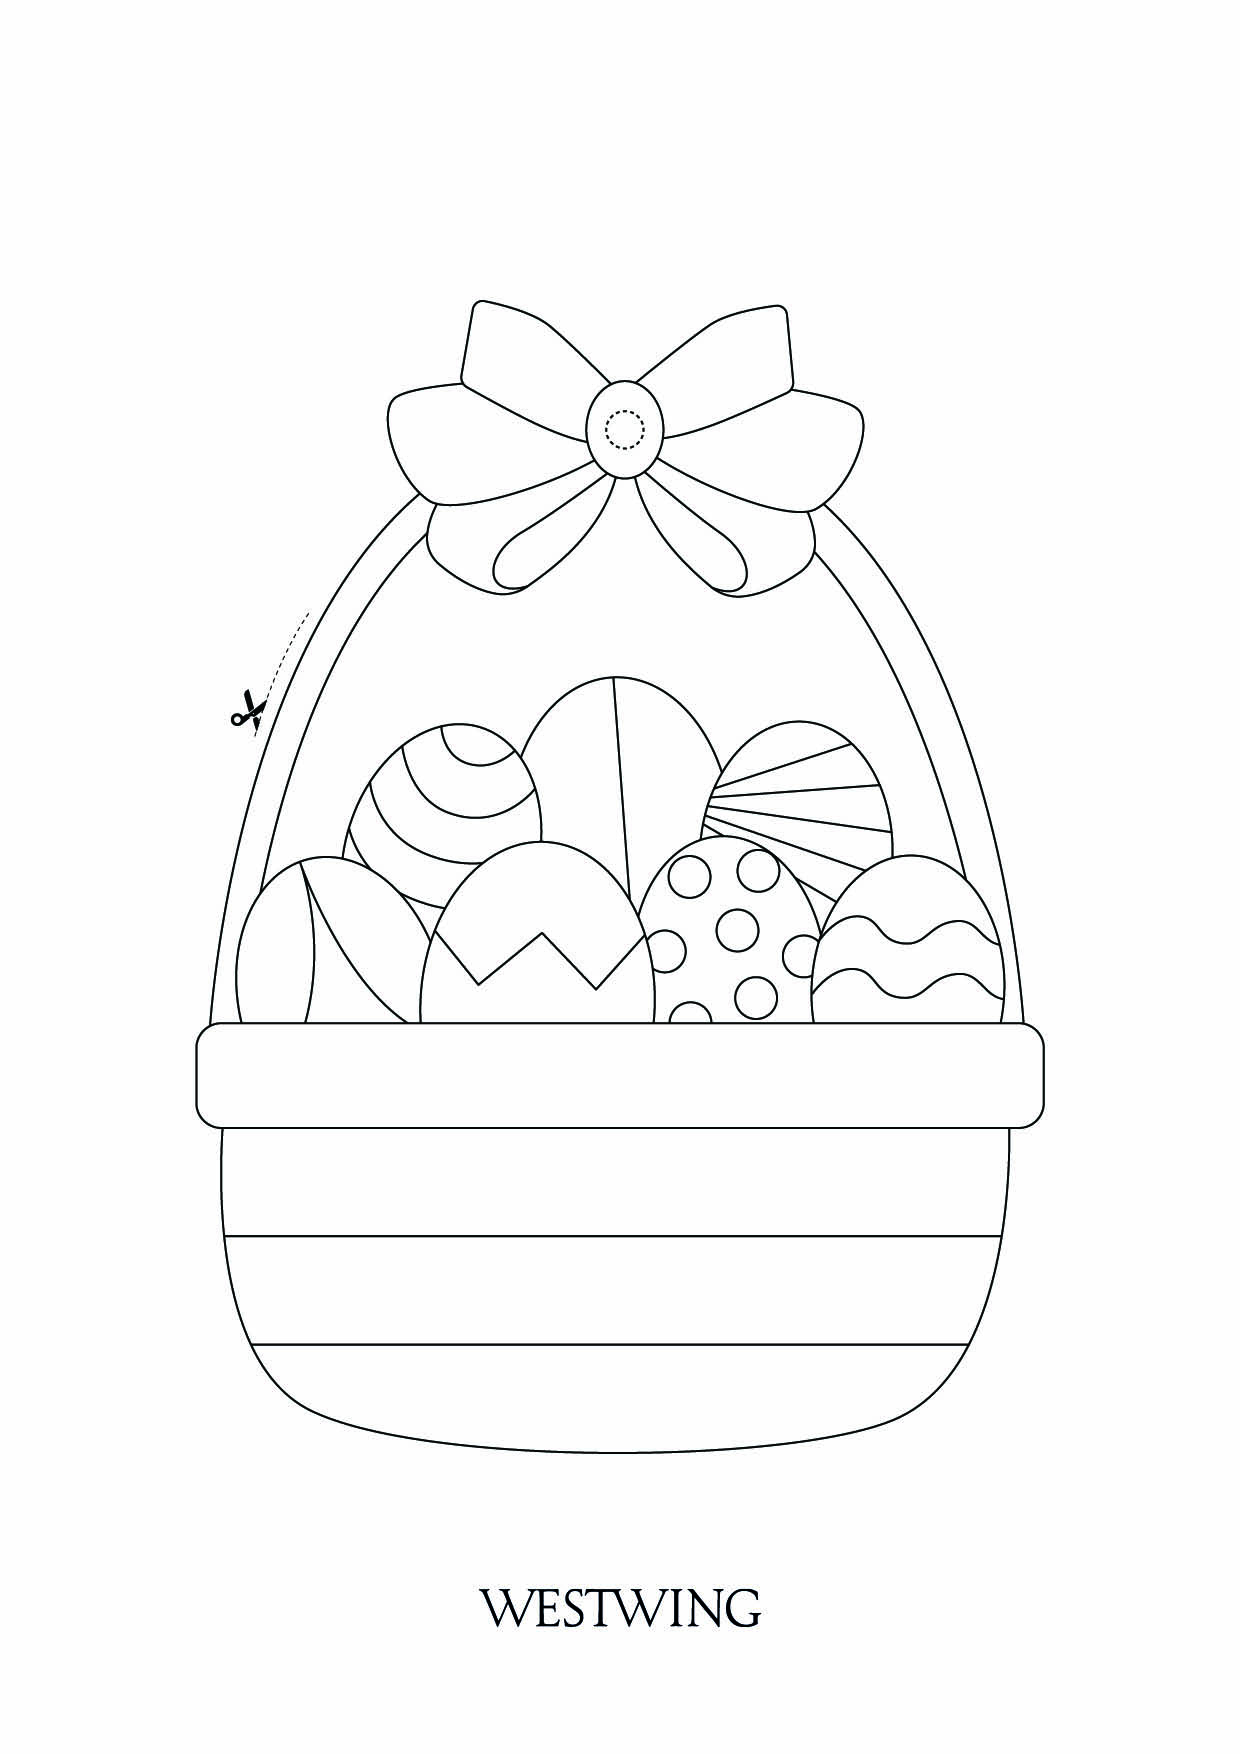 Simple Easter coloring page to print and color for free